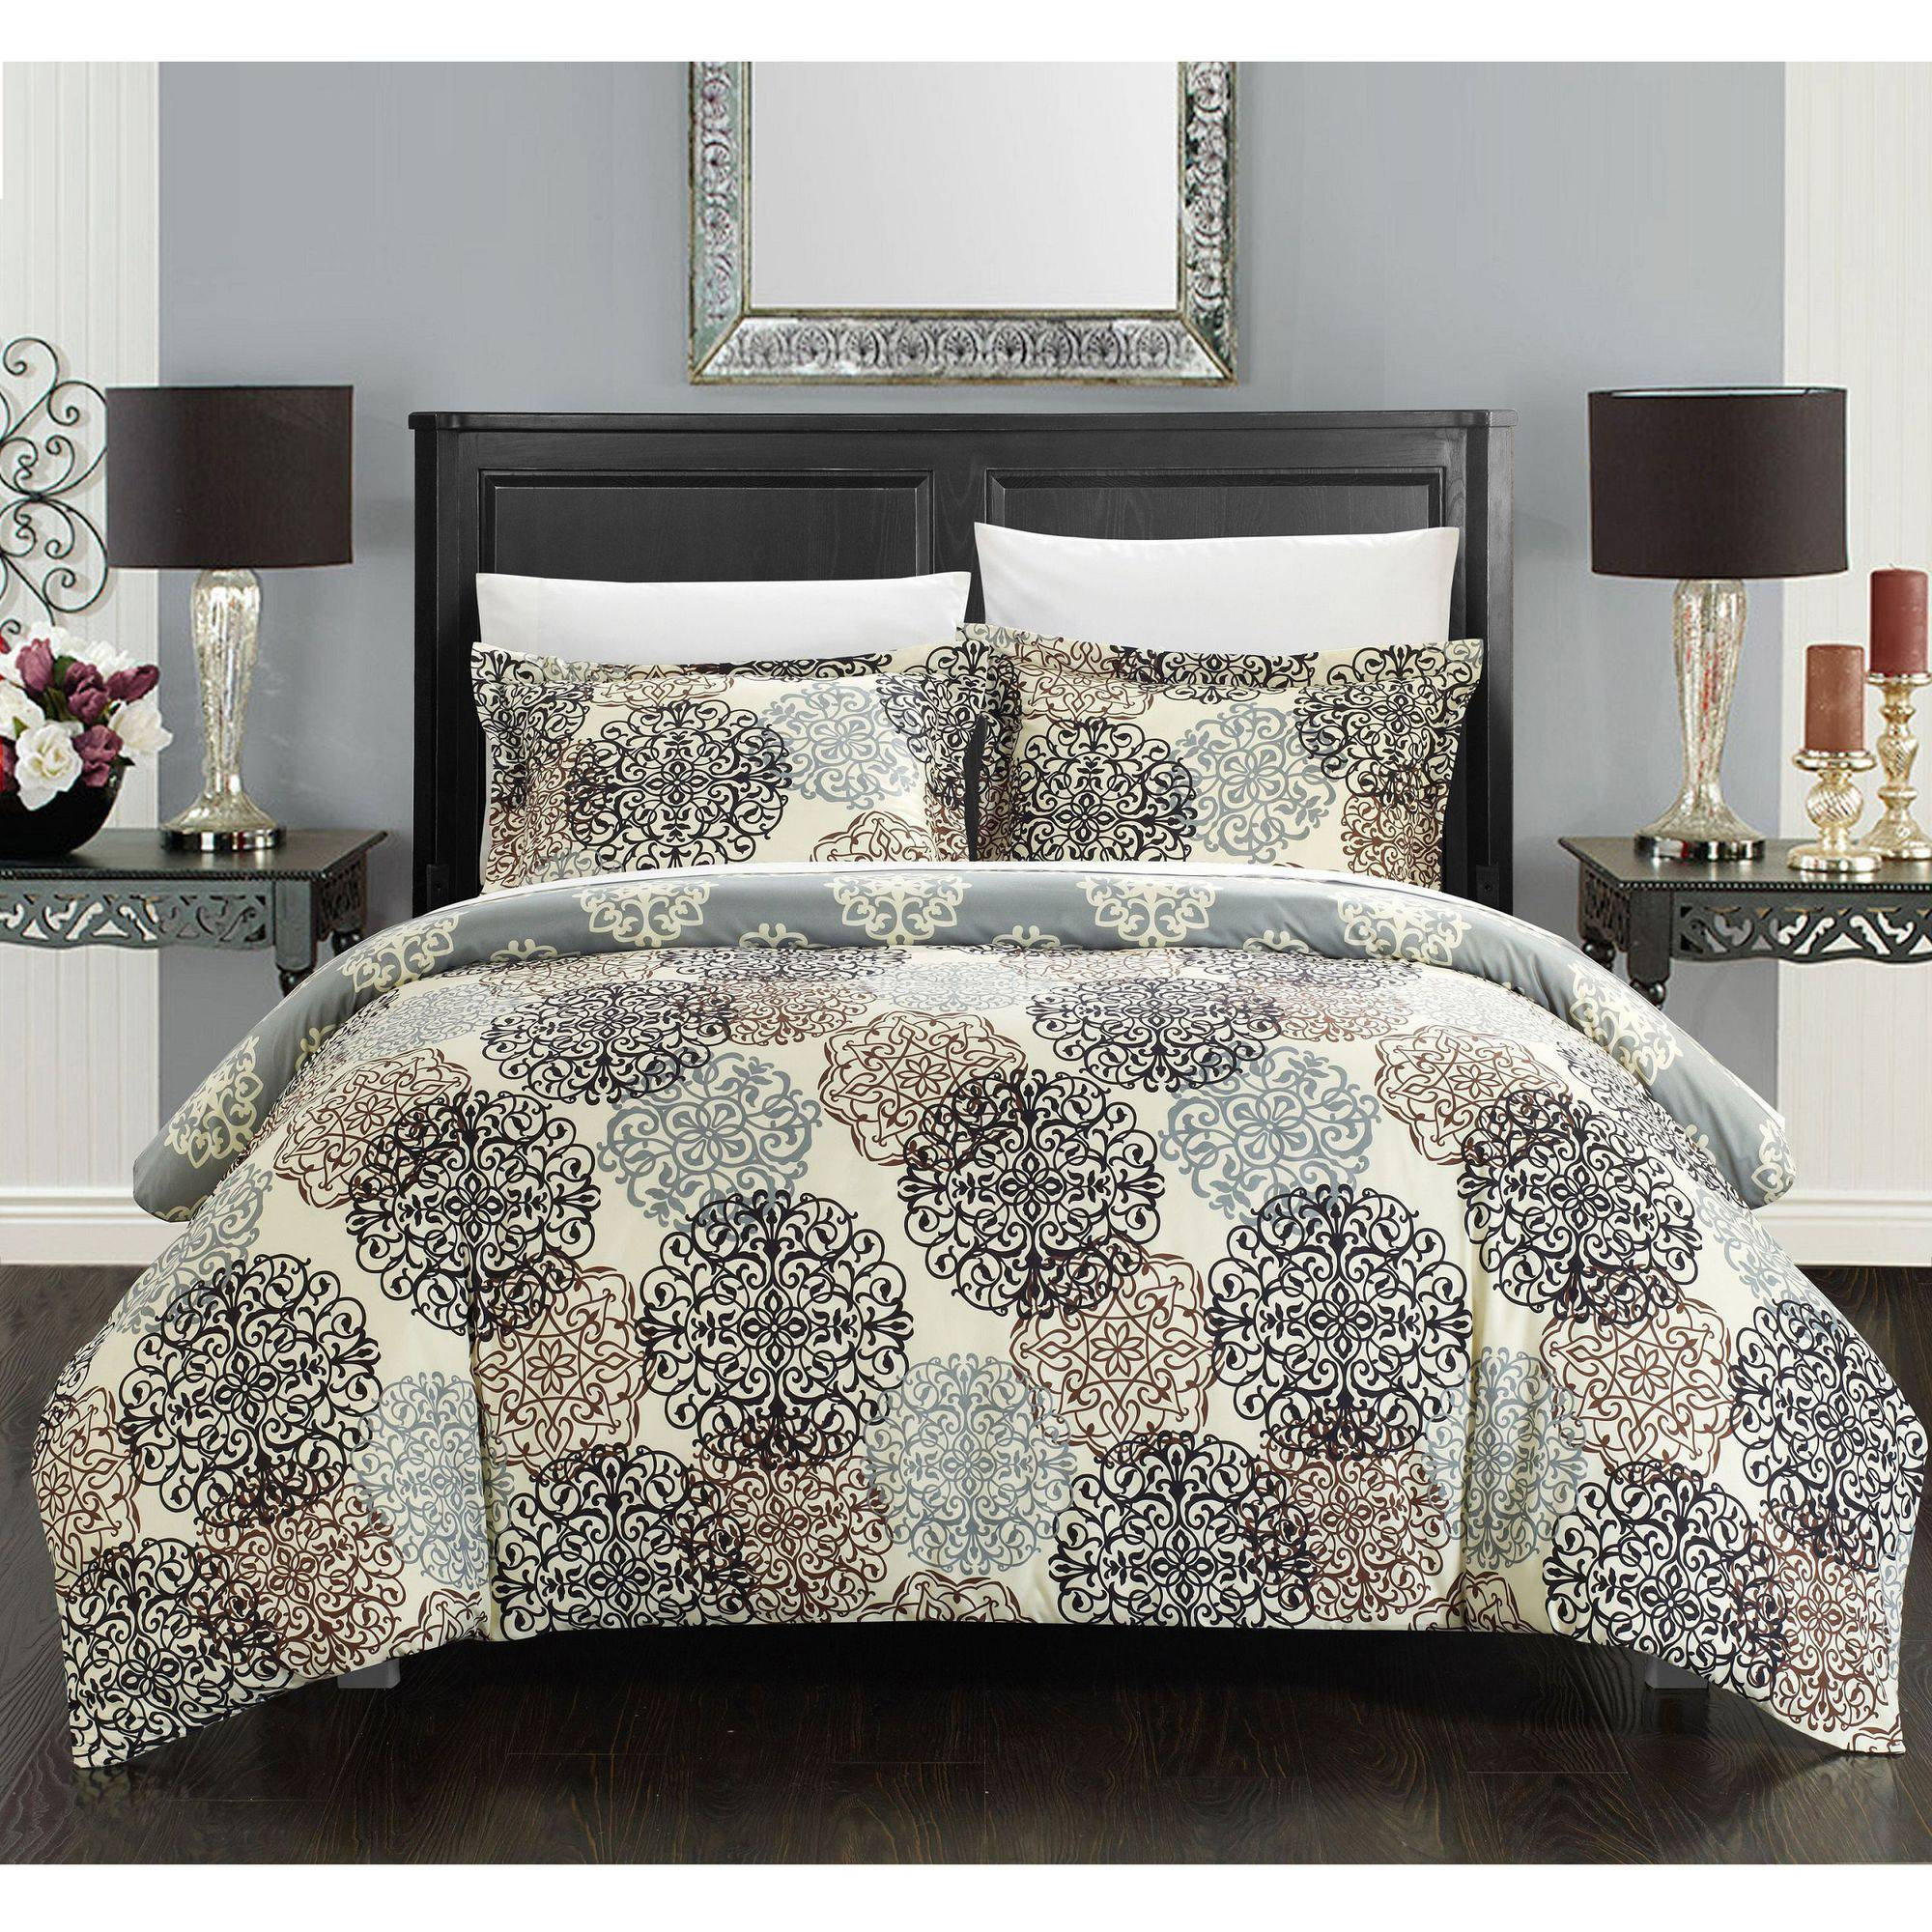 Chic Home 2-Piece Justino Boho Duvet Set